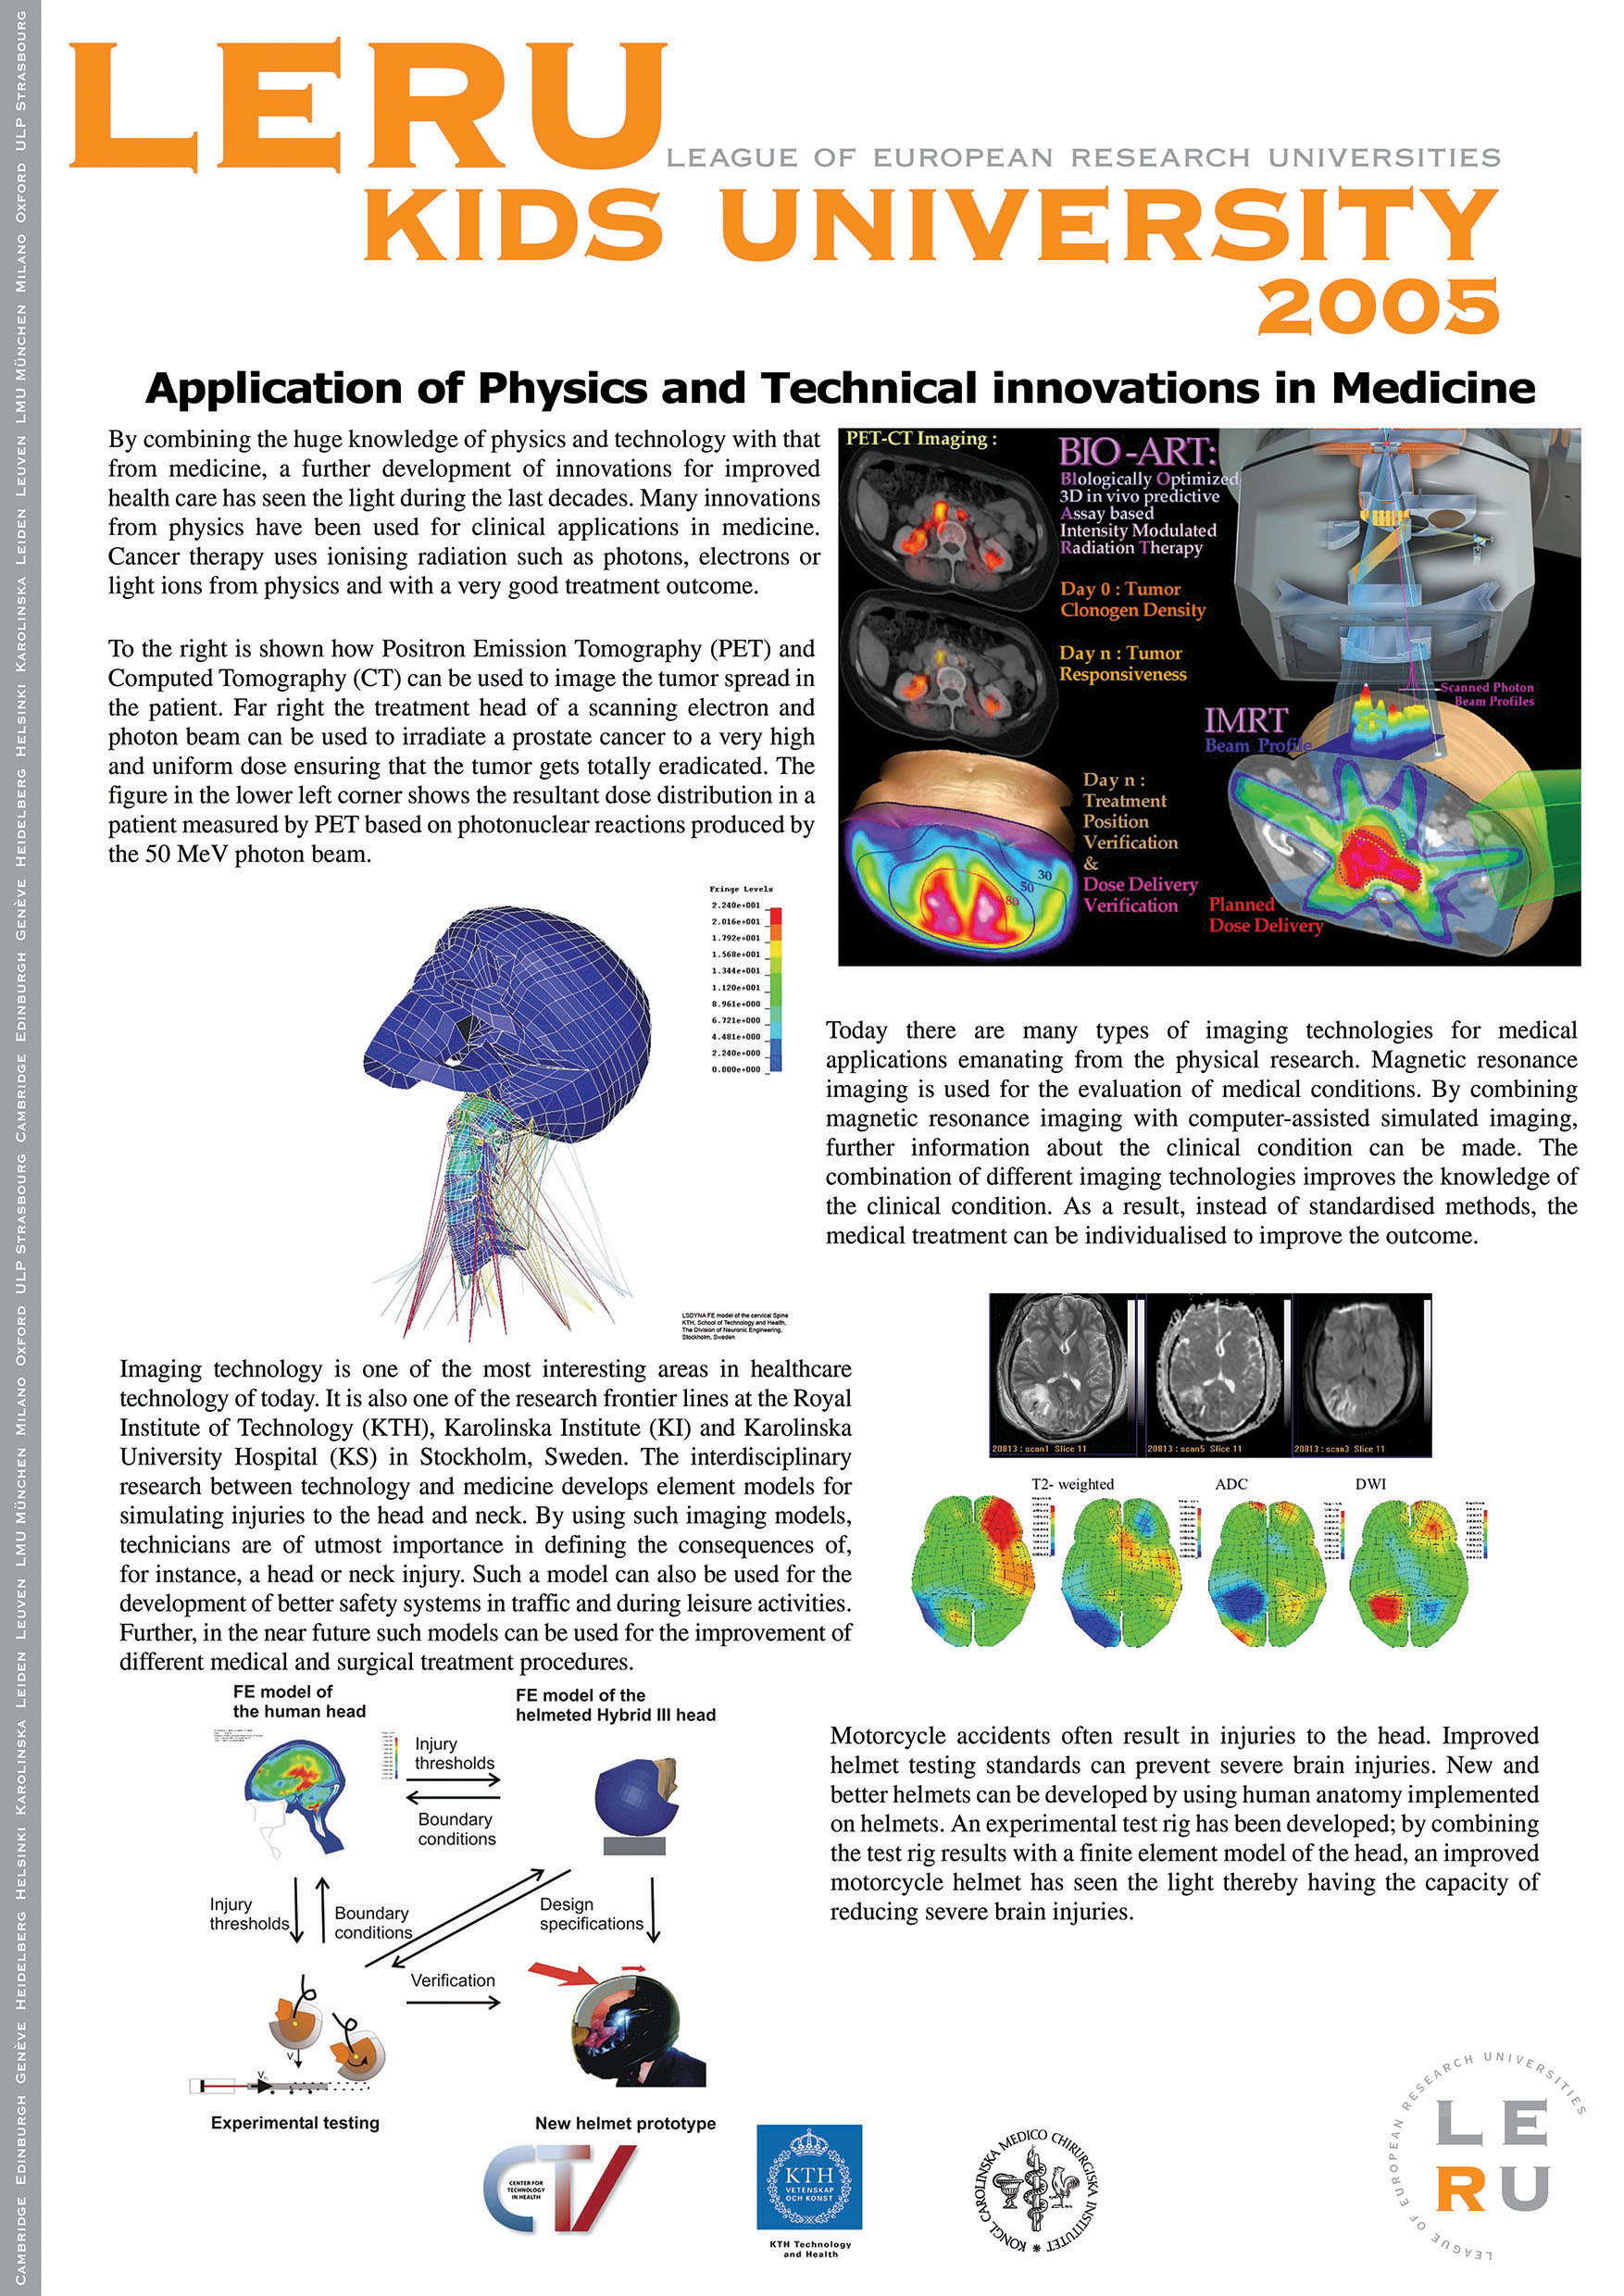 physics in medicine Although physics has some use in physiology, the degree to which physics is taught (even in physics courses designed for pre-med students) goes well beyond that which is needed for learning the science and practice of medicine.